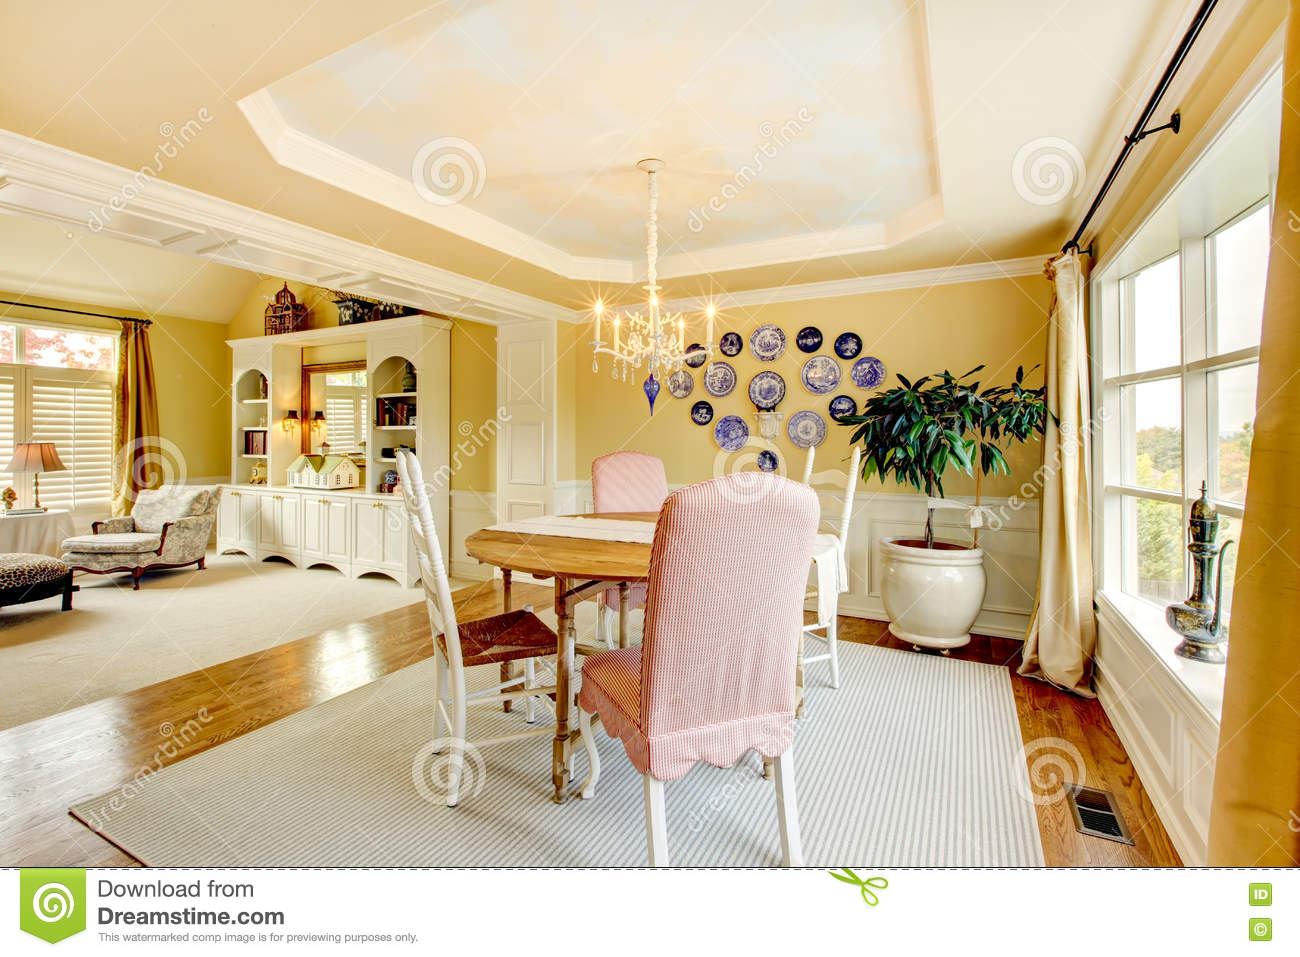 Cozy Yellow American Living Room Interior Design With Plates And